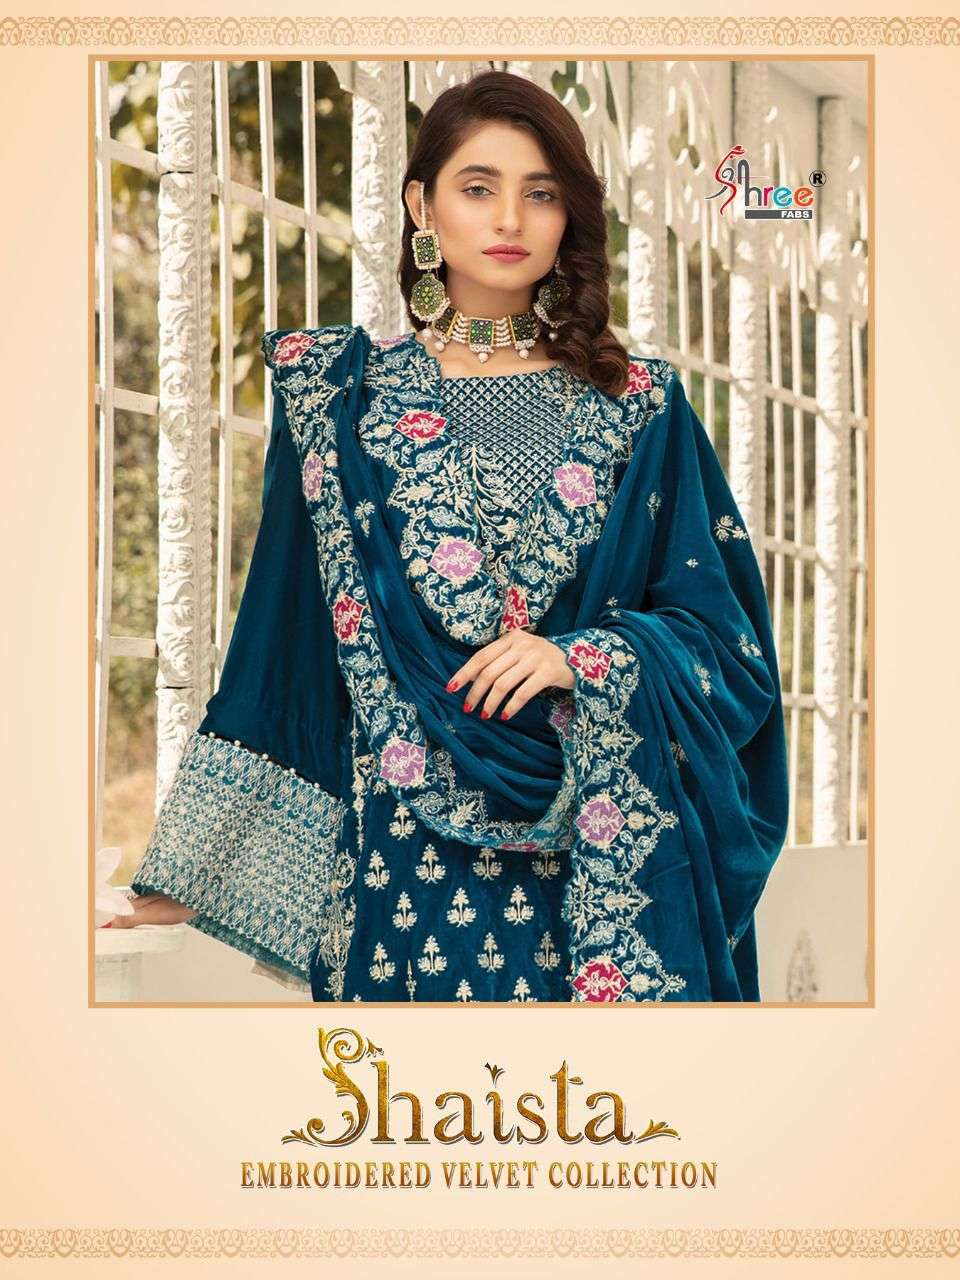 SHREE FAB SHAISTA EMBROIDERED VELVET COLLECTION DESIGNER VELVET WITH EMBROIDERY WORK PAKISTANI PATTERN SUITS WHOLESALE